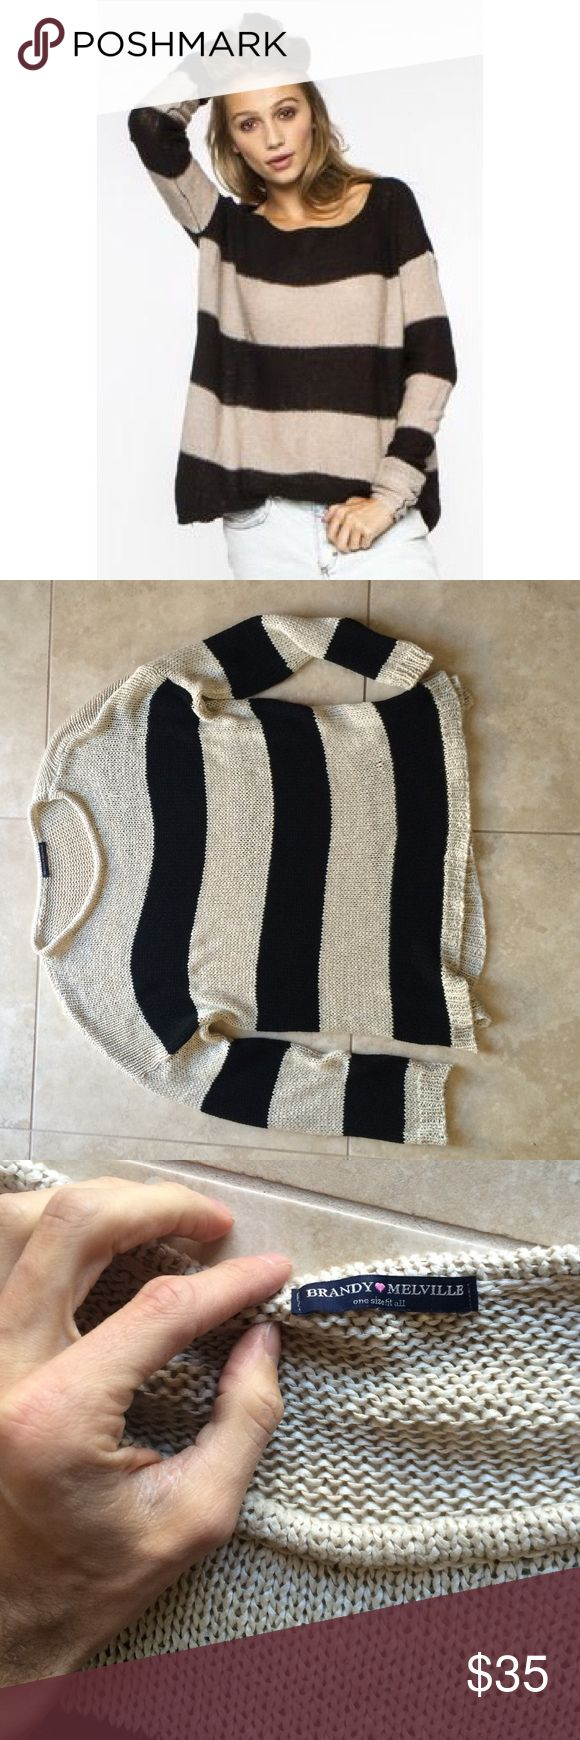 """Brandy Melville oversized striped knit sweater Super cute brandy Melville Creme and black striped knit relaxed fit sweater. One size fits all. Made in Italy. Slightly different from the first stock photo. Can be dressed up or down. So comfy. Sorry I don't model items. Good condition. 70% cotton 30% acrylic. Length 26"""" pit to pit approx 25"""". Priced to sell so unless a very fair offer is submitted, price is pretty firm. Brandy Melville Sweaters Crew & Scoop Necks"""